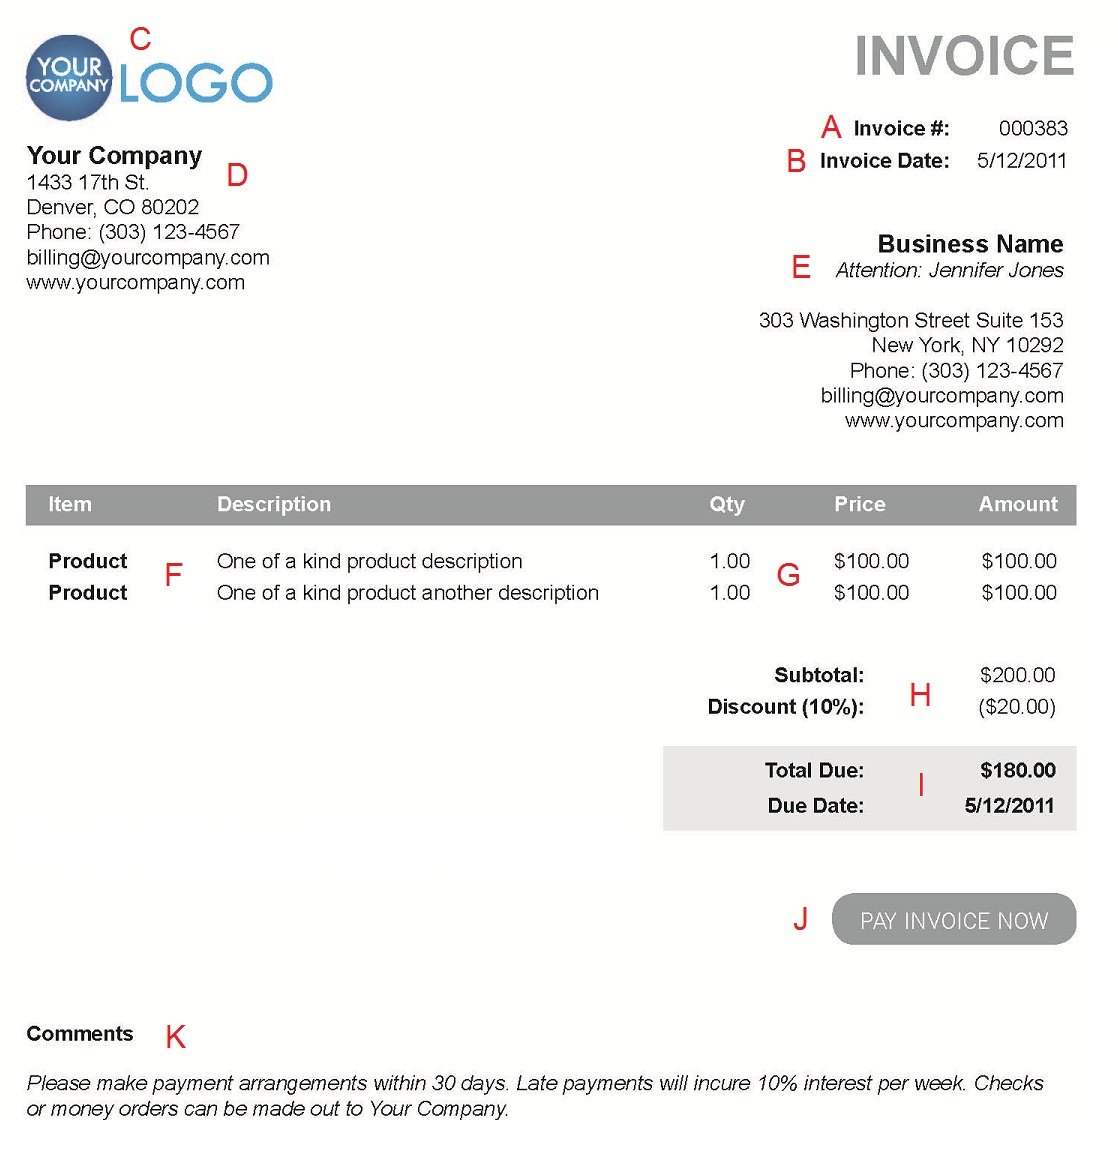 Coolmathgamesus  Picturesque The  Different Sections Of An Electronic Payment Invoice With Magnificent A  With Captivating How Do I Make A Receipt Also Template Receipt For Services In Addition Official Receipt Maker And Receipt Slip Sample As Well As Cheque Receipt Template Additionally Scanning Receipts For Taxes From Paysimplecom With Coolmathgamesus  Magnificent The  Different Sections Of An Electronic Payment Invoice With Captivating A  And Picturesque How Do I Make A Receipt Also Template Receipt For Services In Addition Official Receipt Maker From Paysimplecom